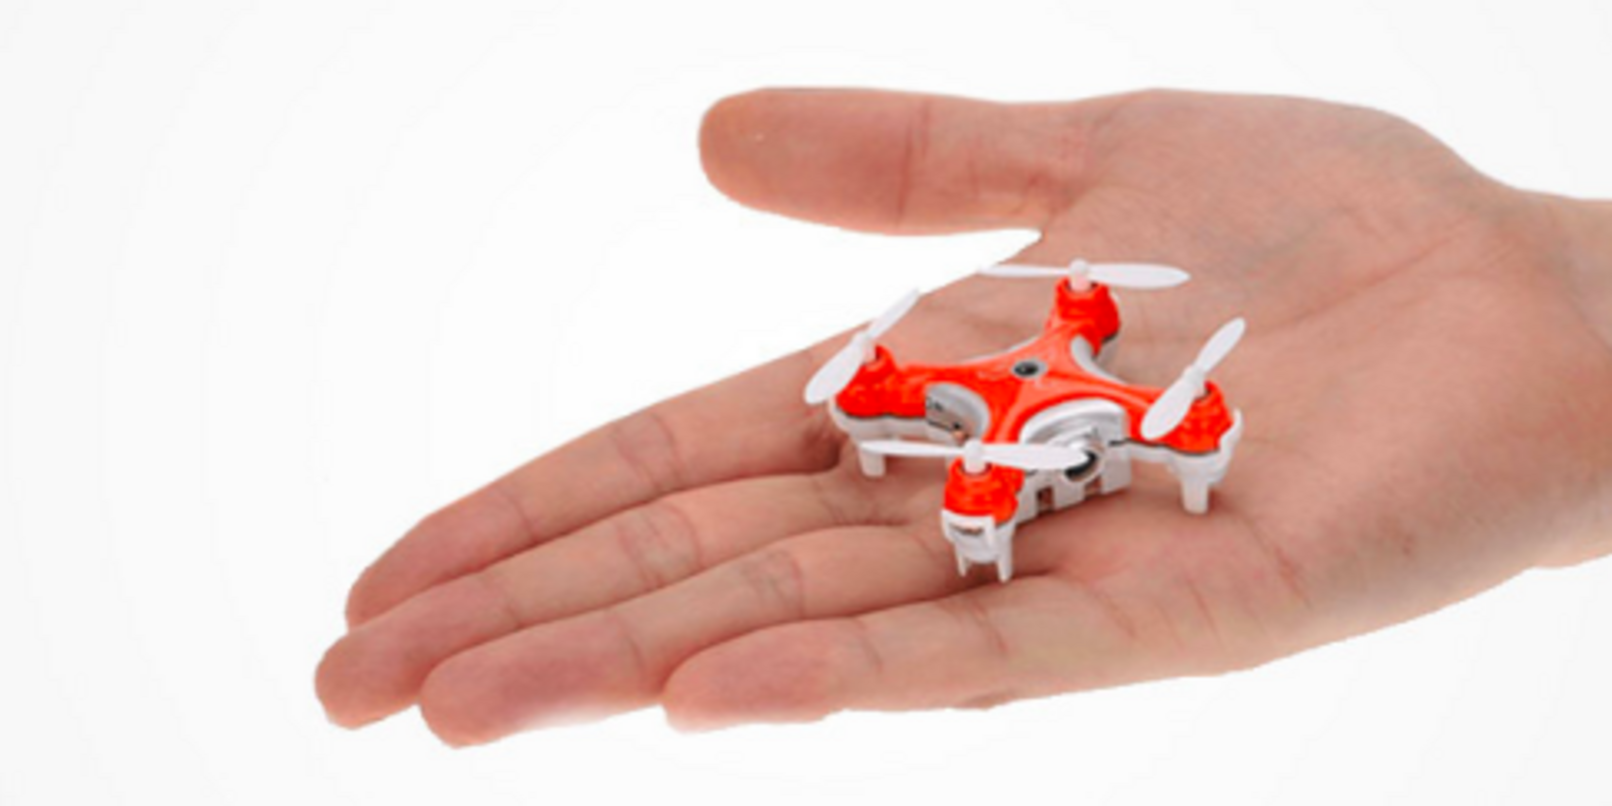 The World's Smallest Camera Drone Can Be Yours for Just $27 Right Now